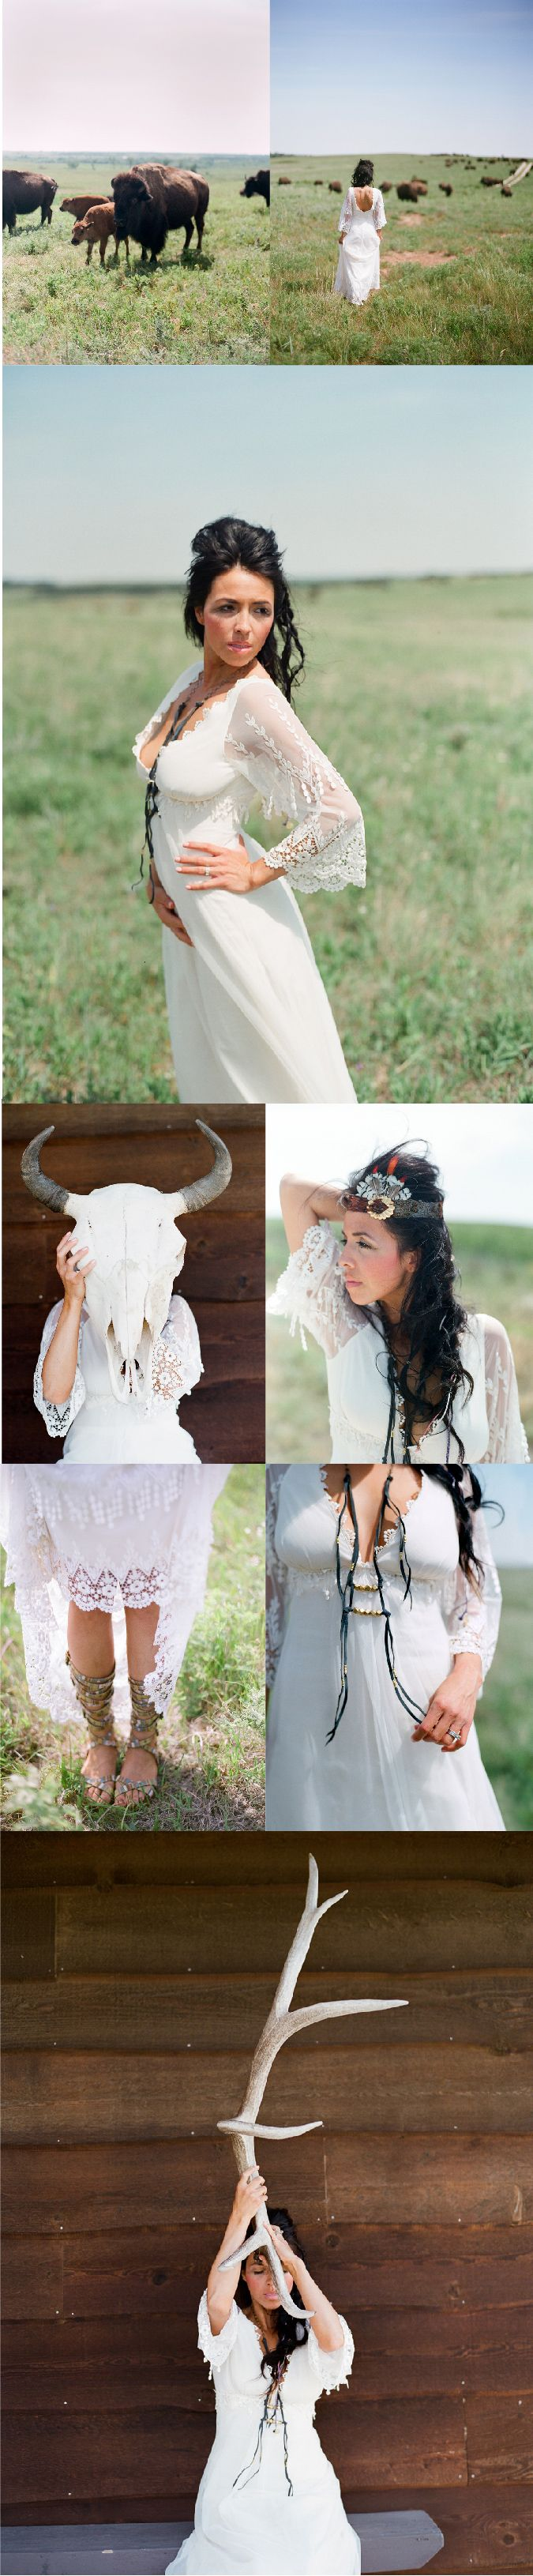 rustic-wedding-ideas-free-people-claire-pettibone-native-american-prairie-style-shoot-Photo-by-Chelsea-Mitchell-4 #photography